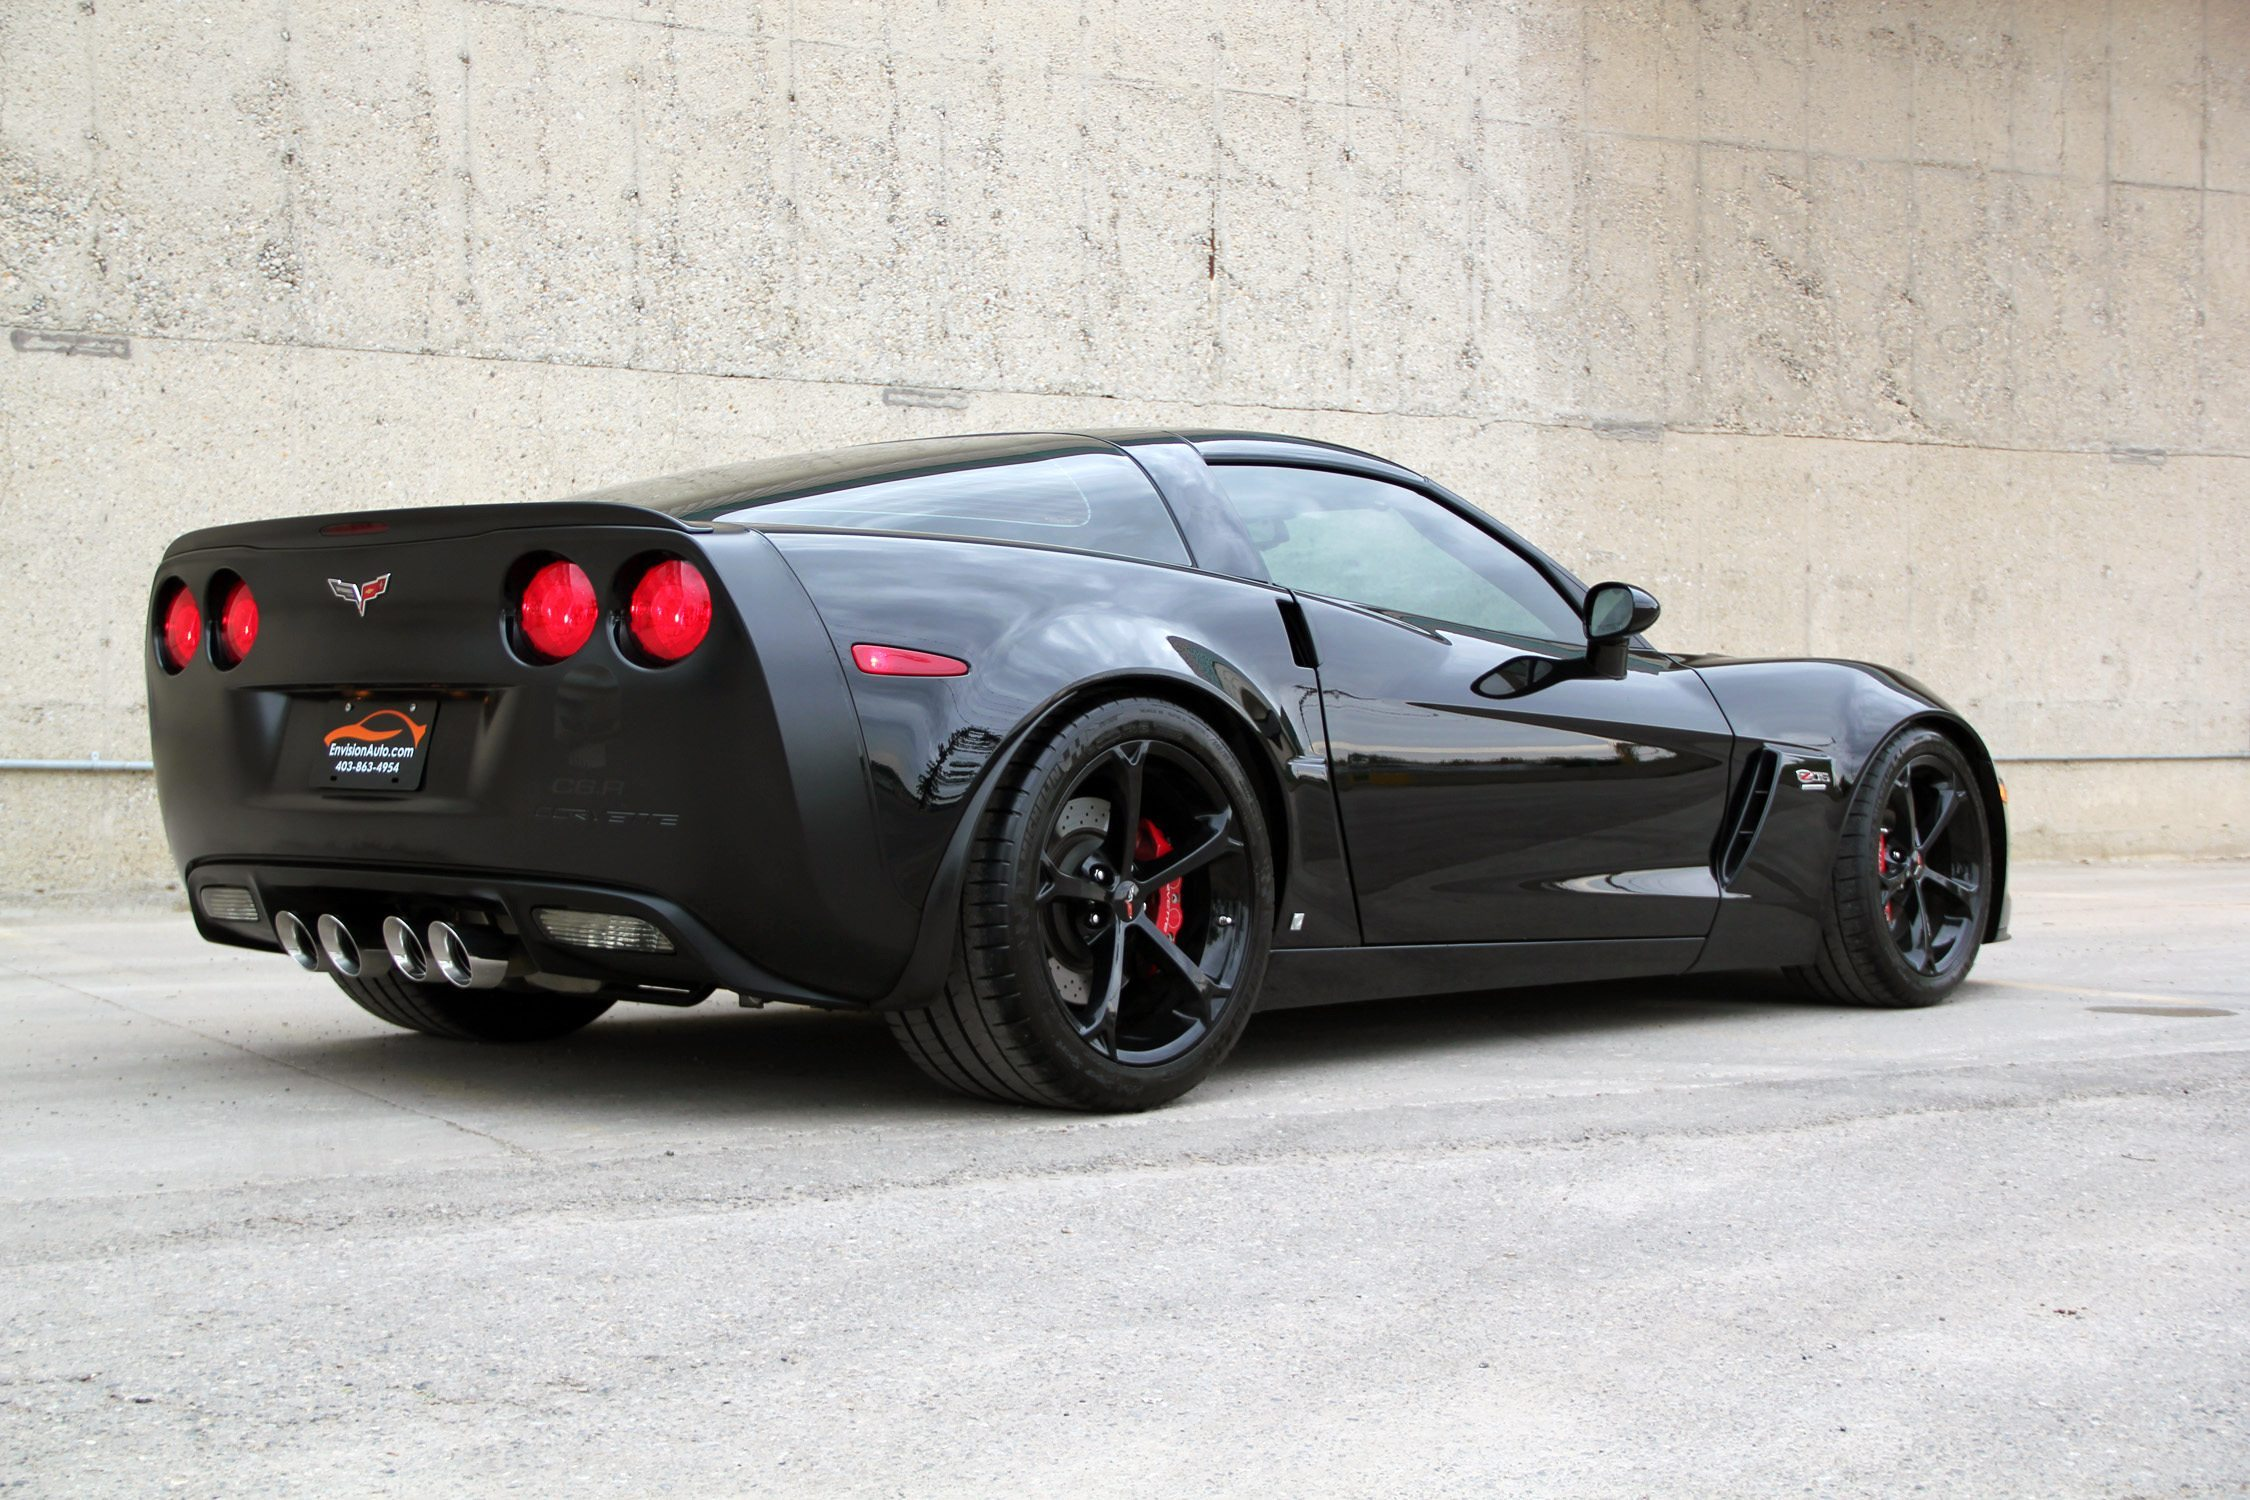 2008 Corvette For Sale >> 2008 C6 Corvette | Image Gallery & Pictures